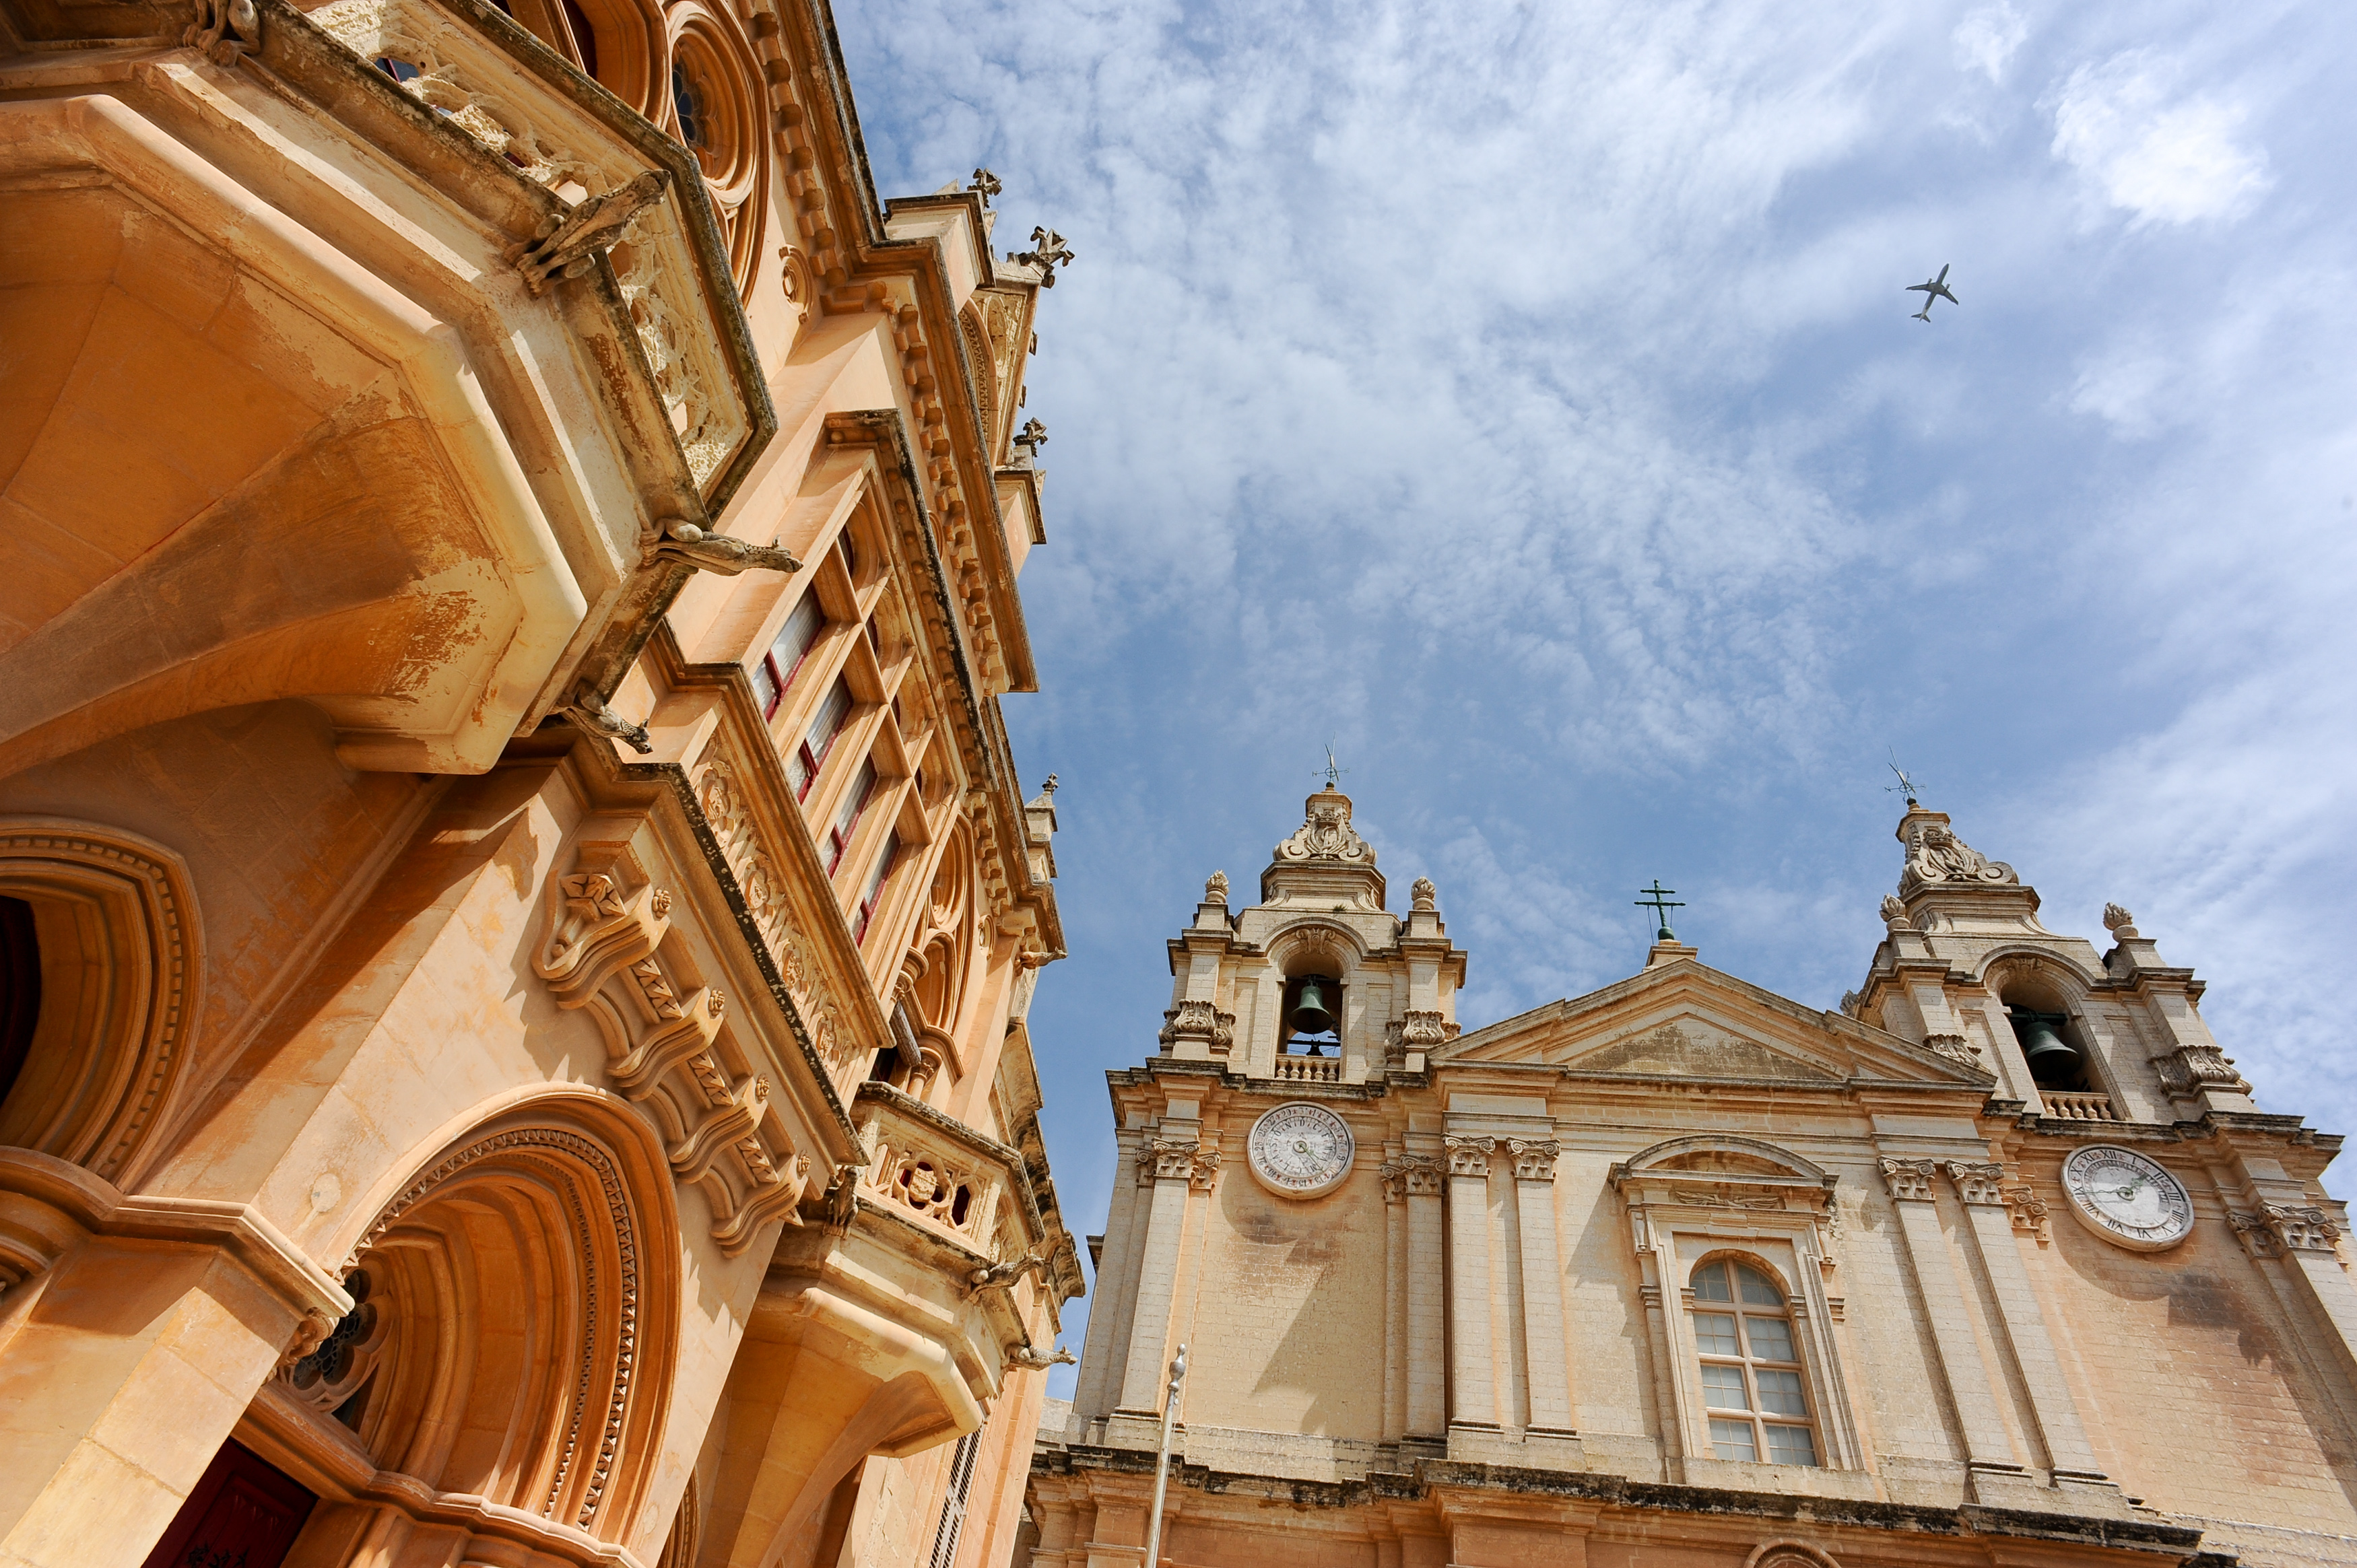 St. Paul's Cathedral, Valletta (Mdina), Malta, Mediterranean Sea.